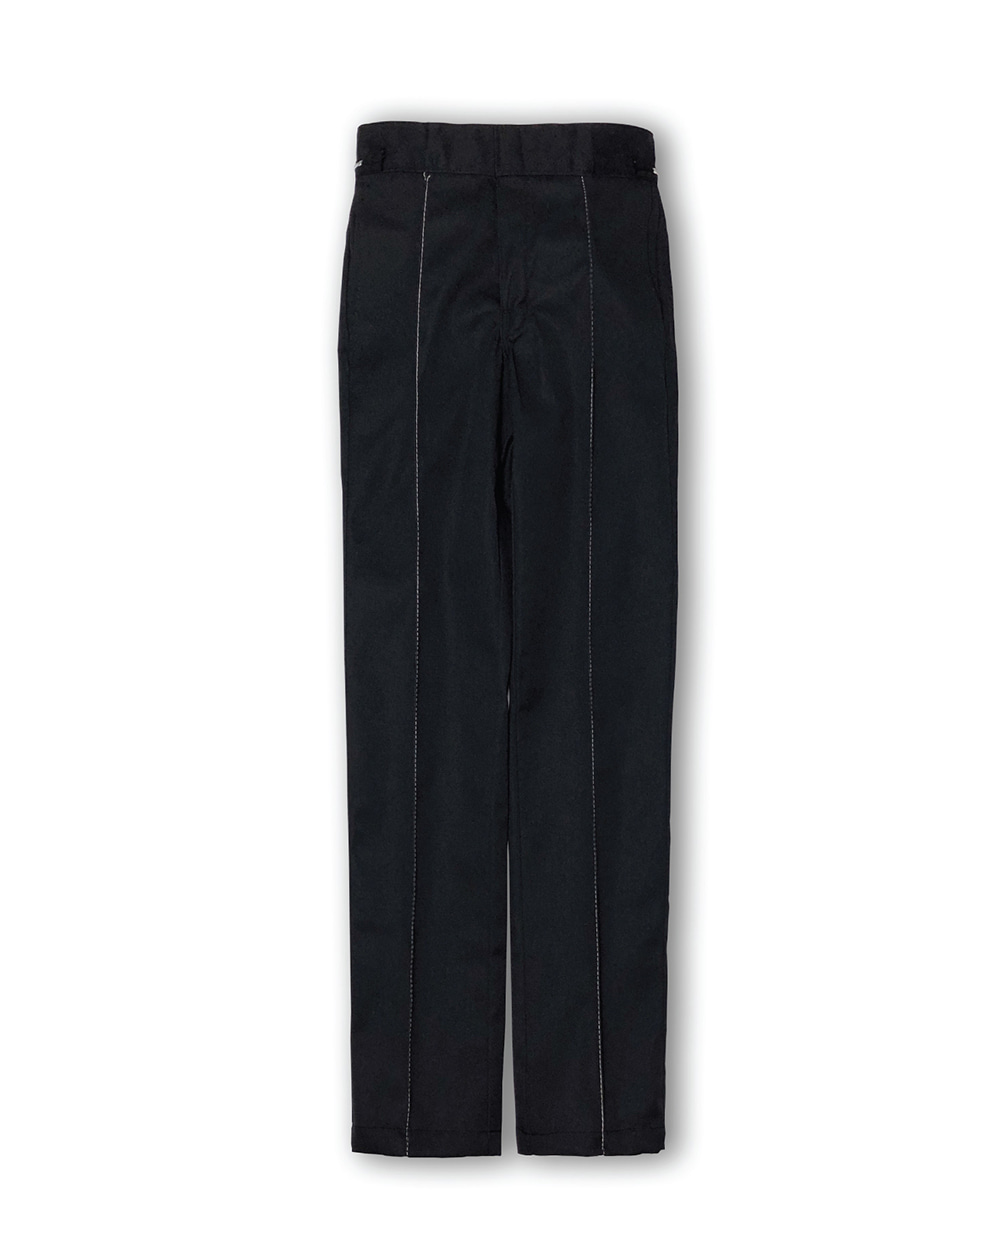 GOOD NEWS  SLIM FIT PINTUCK PANTS (Black)